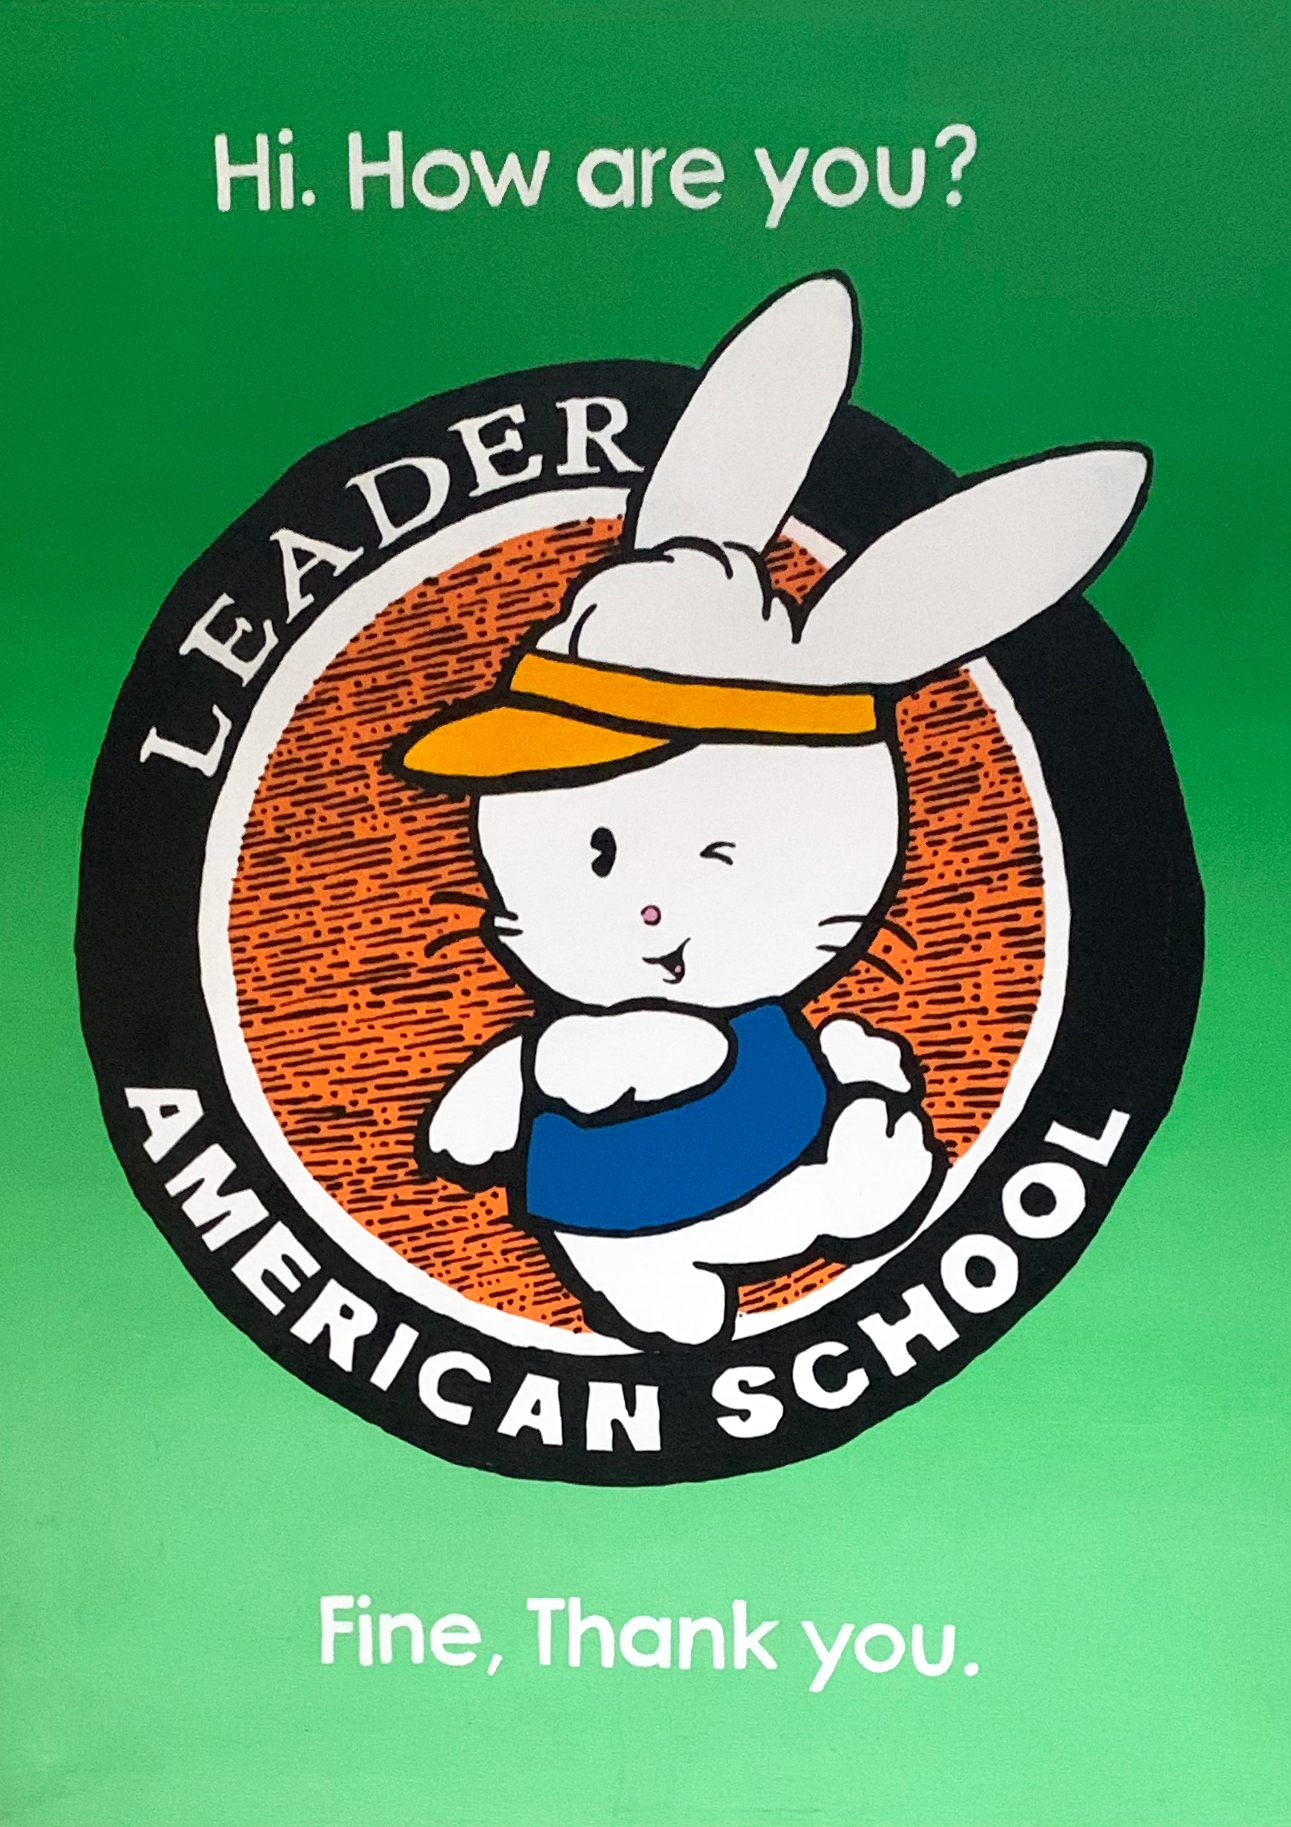 Leader English School